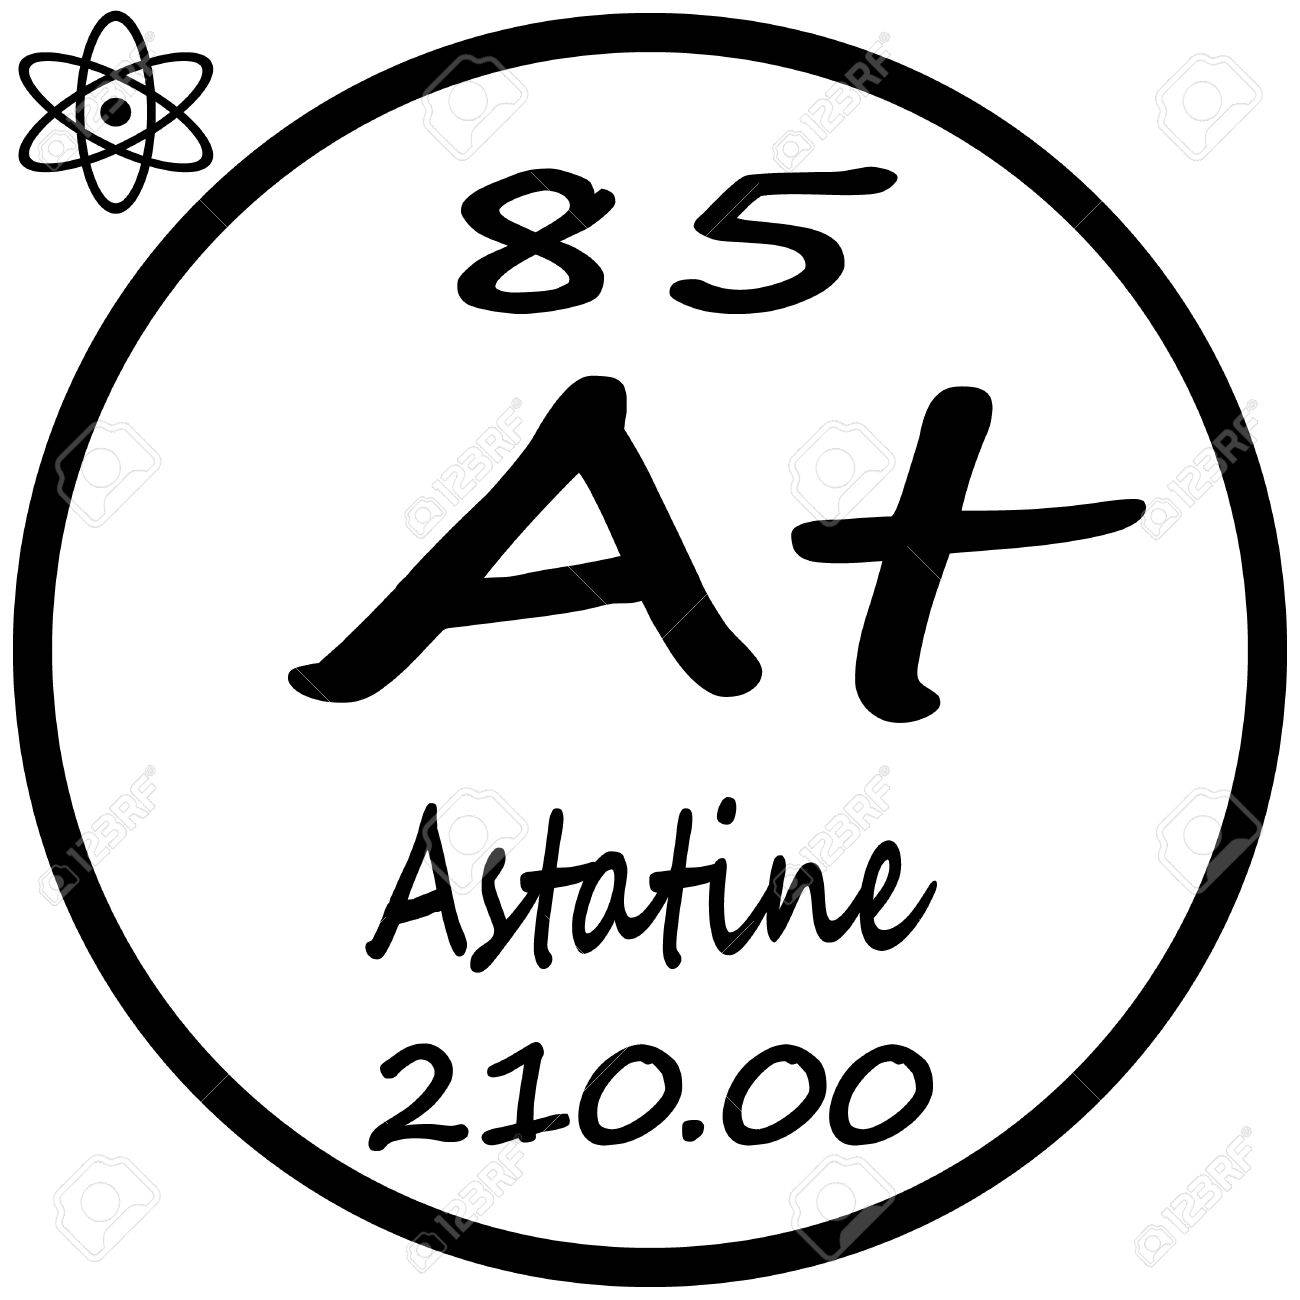 Periodic table of elements astatine royalty free cliparts vectors periodic table of elements astatine stock vector 53482375 urtaz Image collections